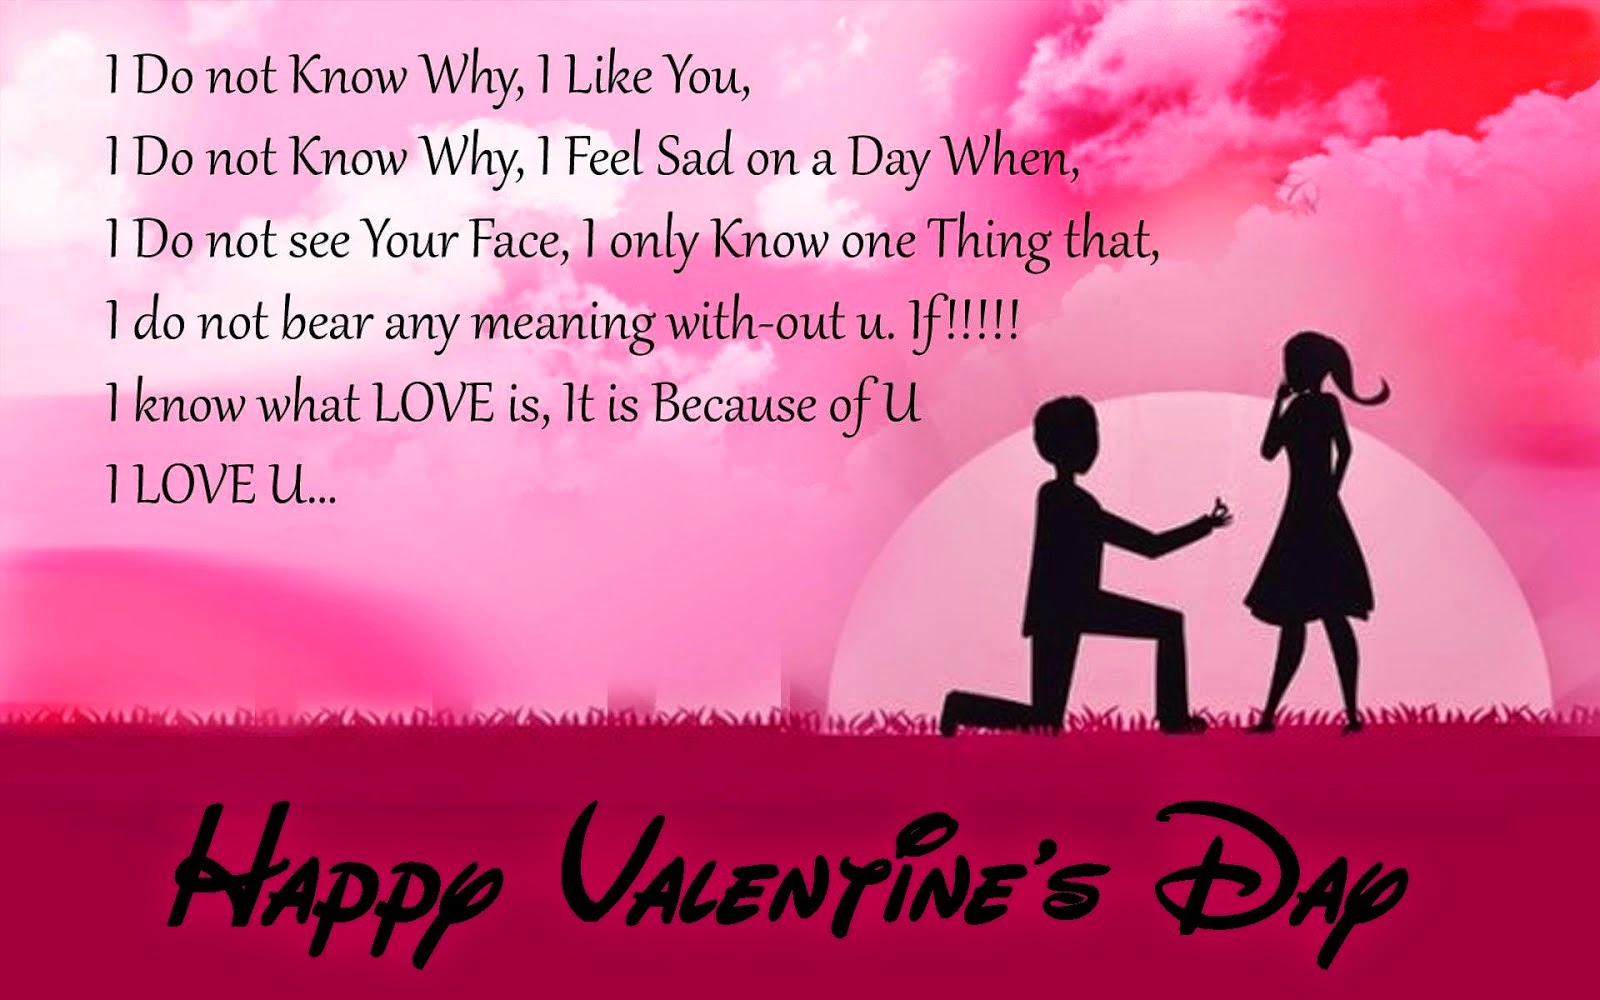 Happy Valentines Day Greetings: